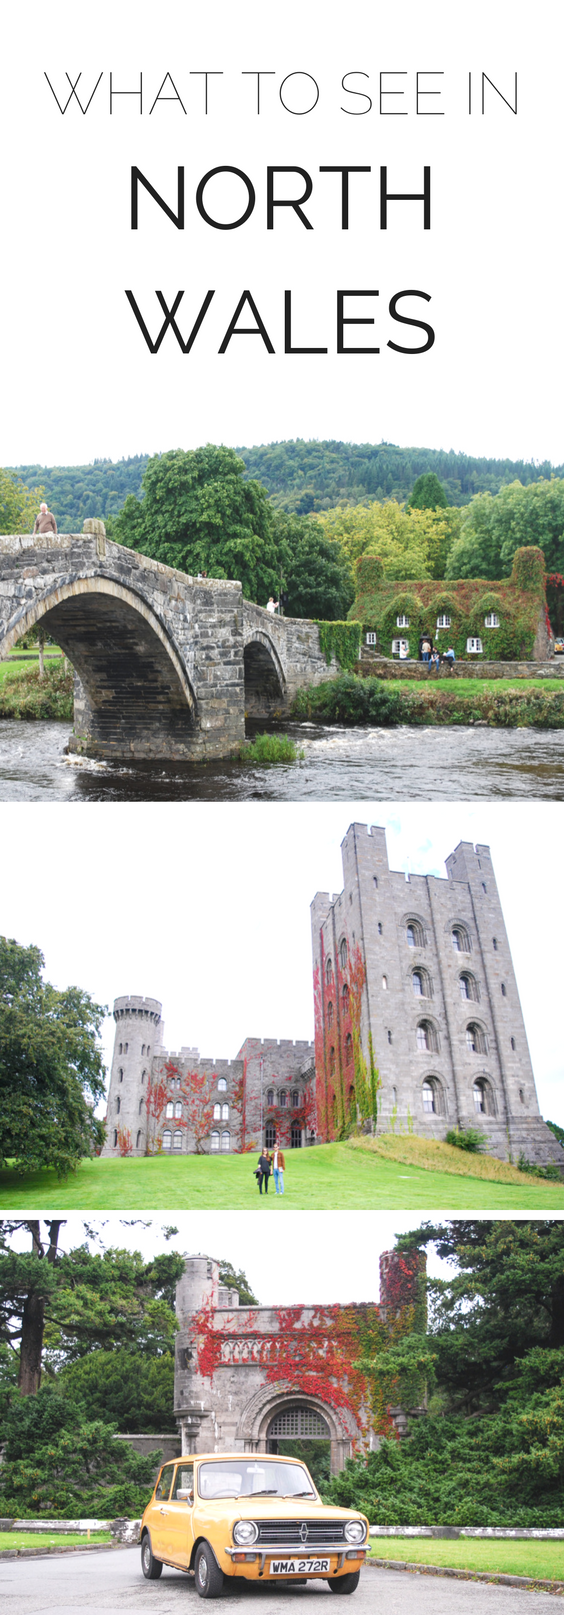 Exploring North Wales - Travel Blog - City Cookie